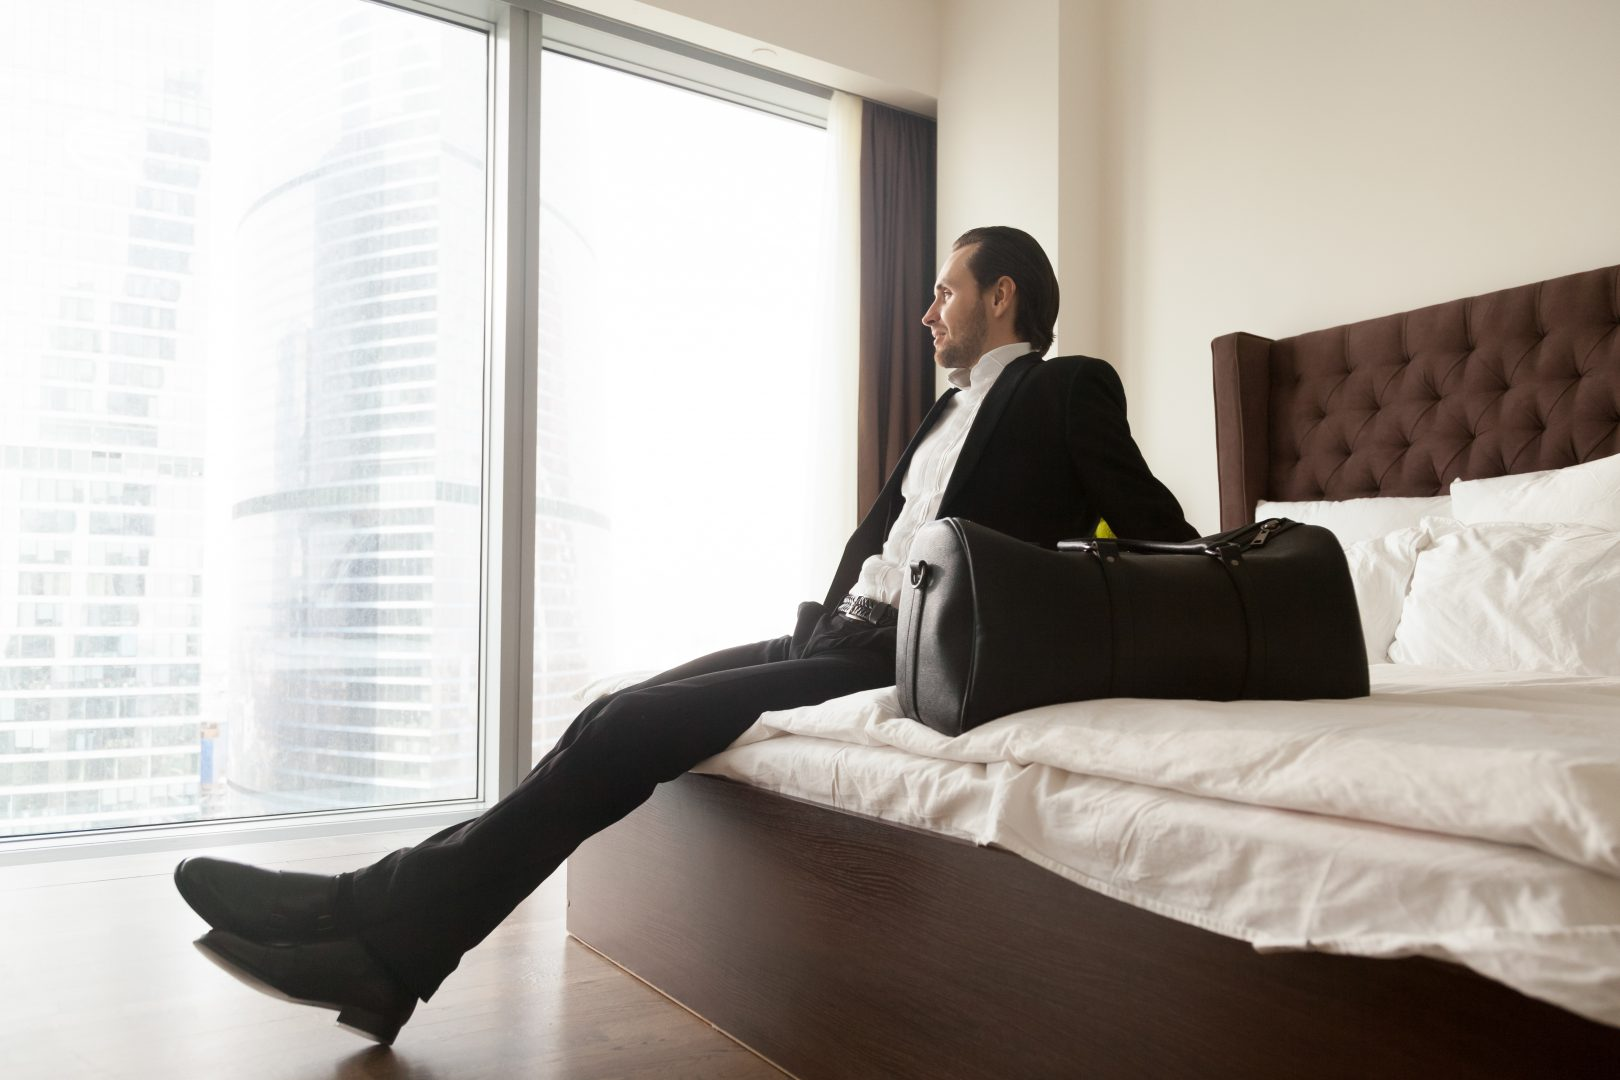 Relaxed businessman with luggage bag sitting on bed in luxurious hotel room, looking towards window. Smiling entrepreneur in suit rests after long business trip, looking forward to unpack and relax.